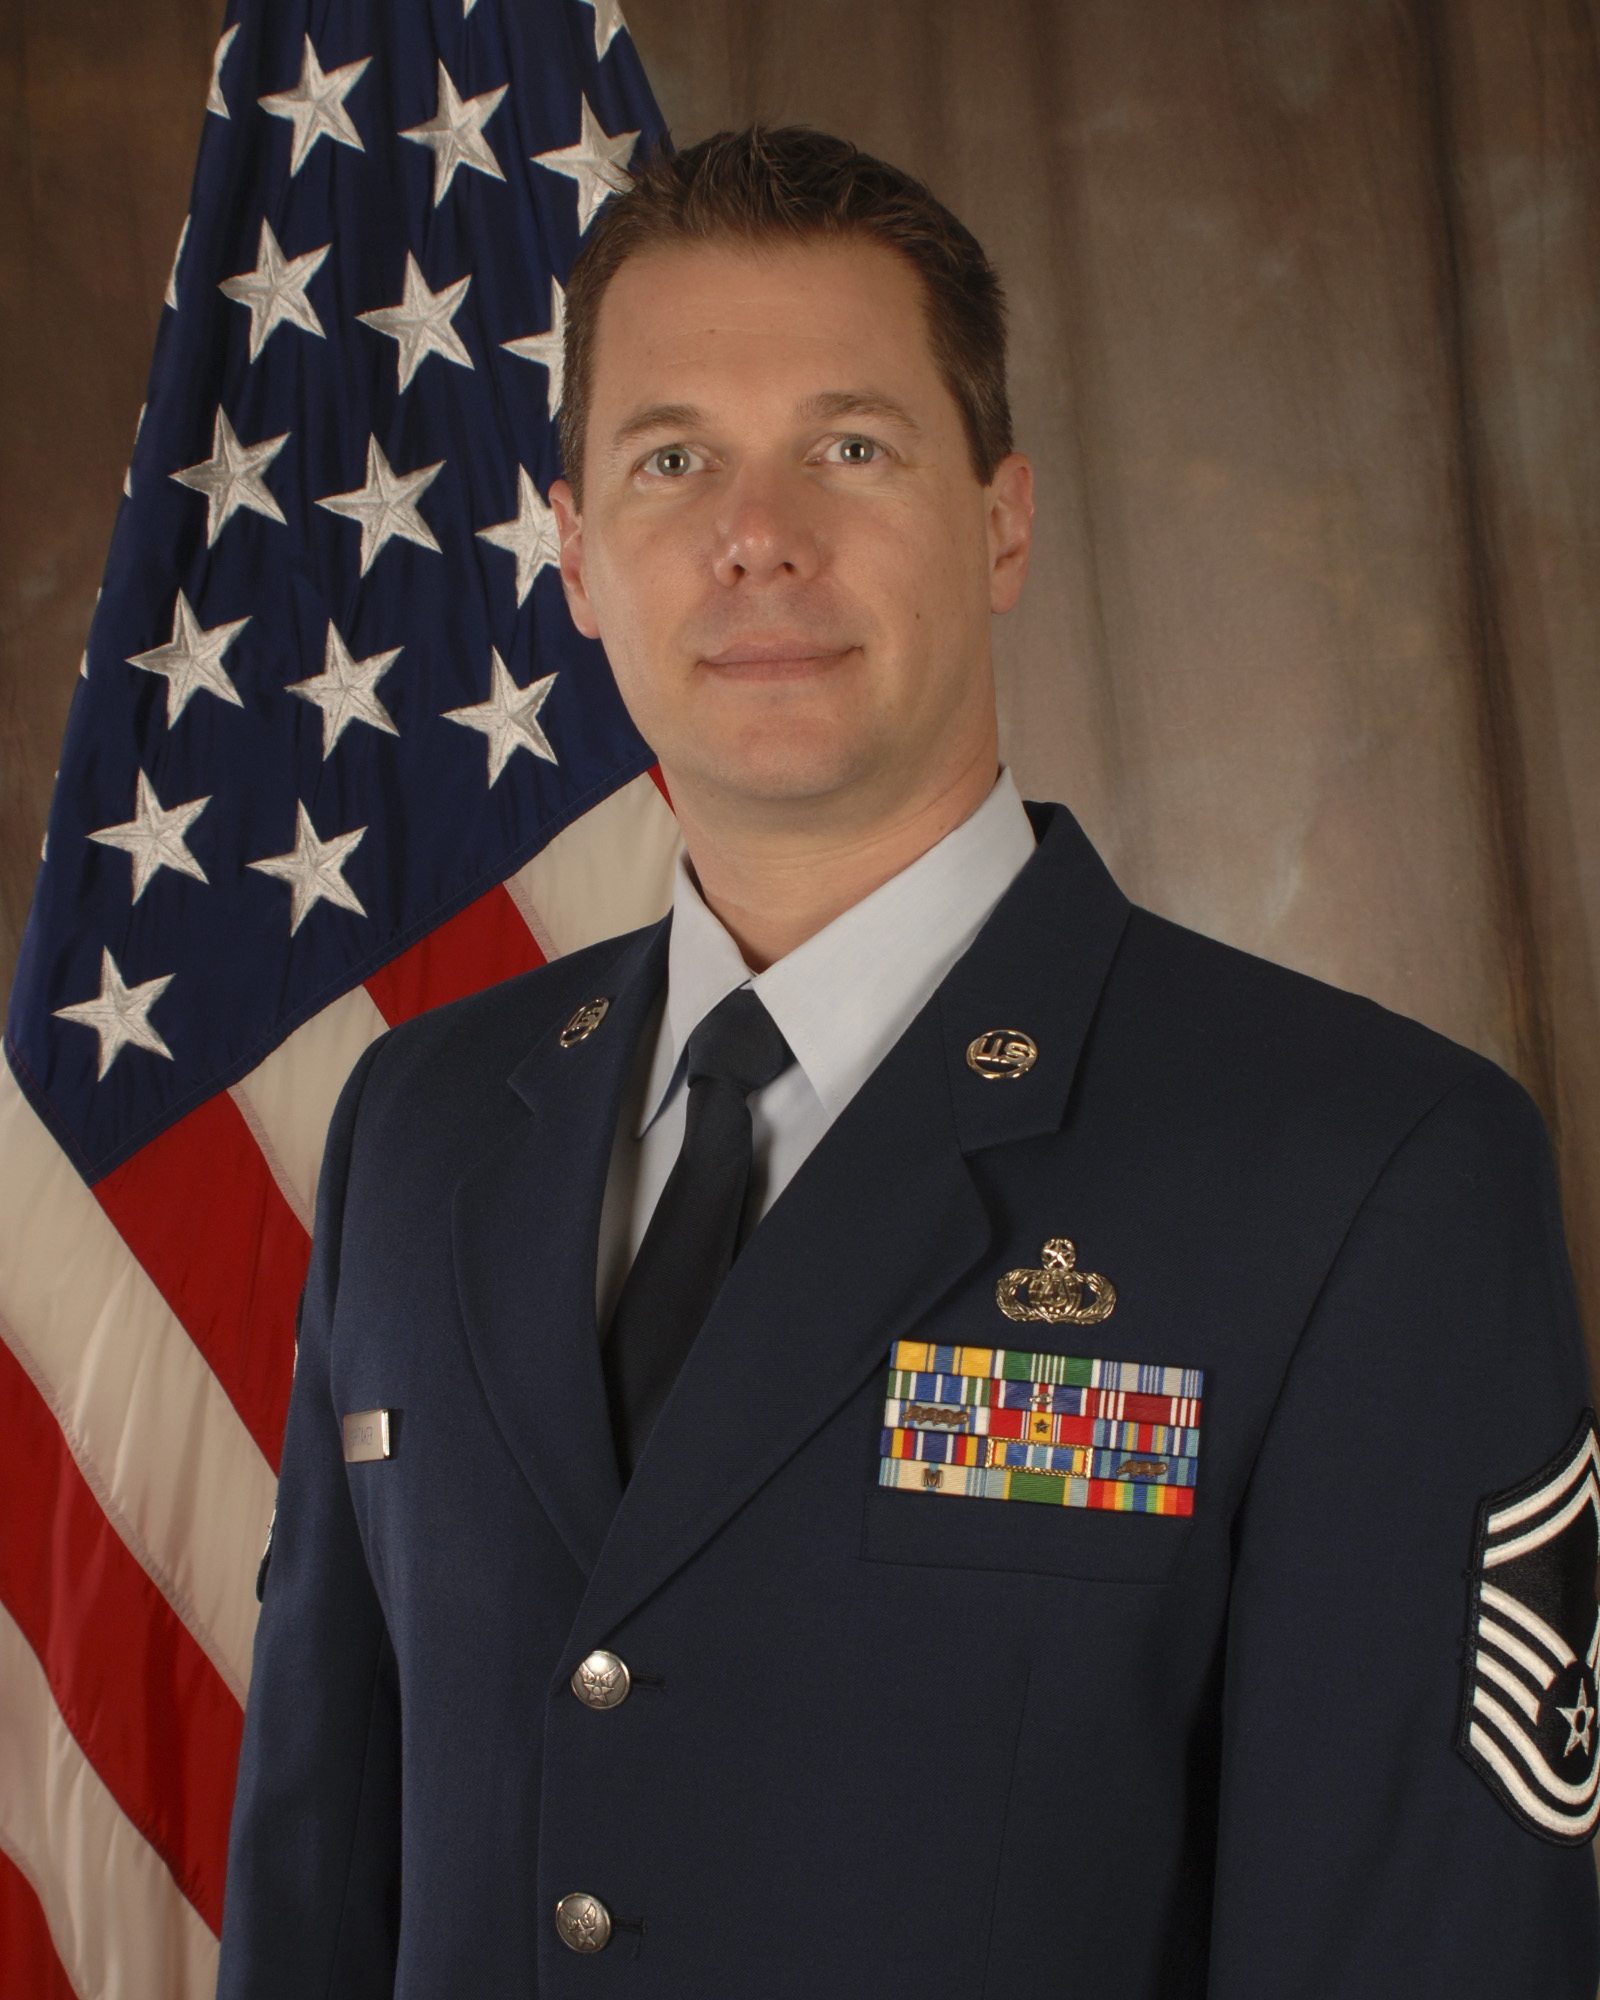 Sr. Master Sergeant Brent Whitaker, Band Manager of the Air National Guard Band of the South